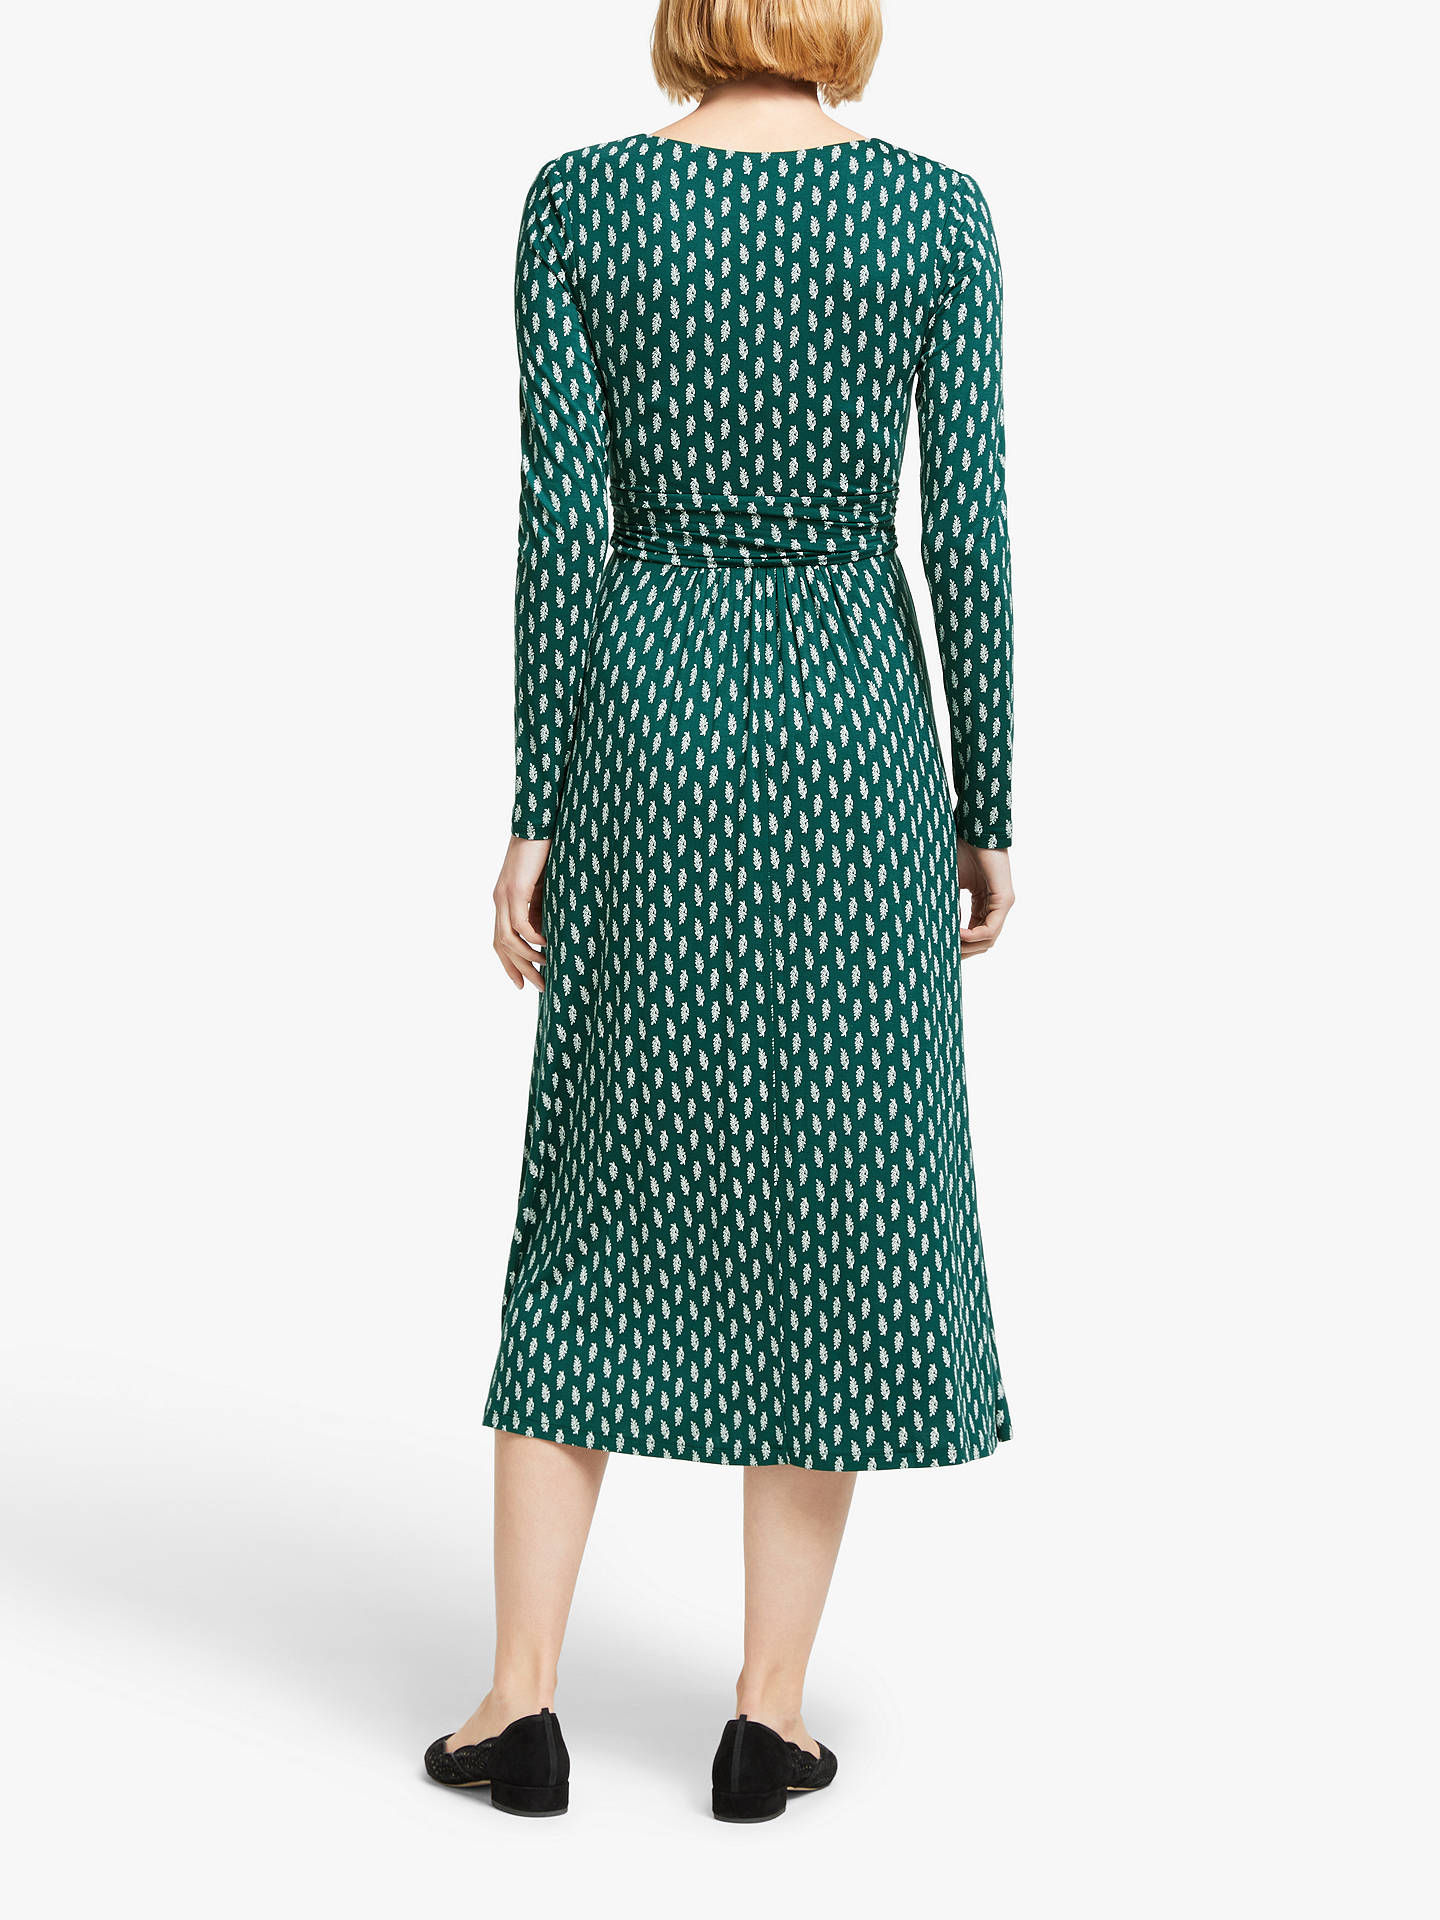 Boden Ferne Leaf Print Jersey Midi Dress, Black at John